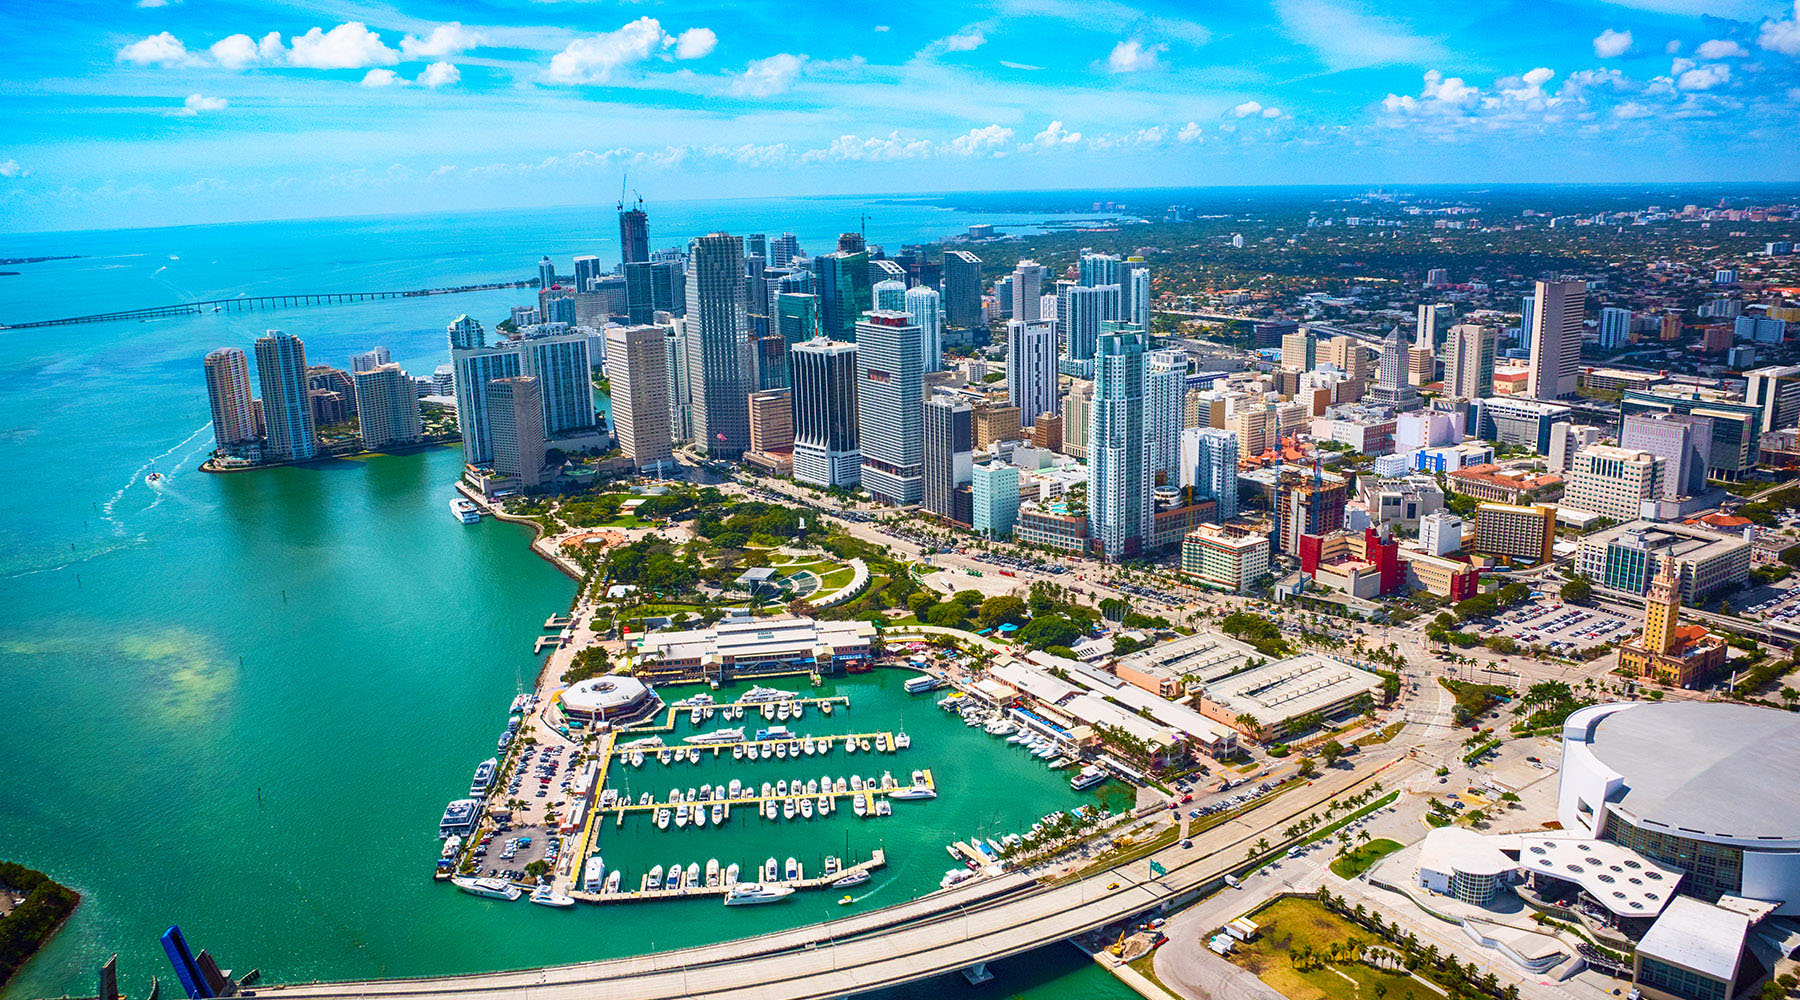 10-Night Caribbean Voyage & 3-Night Post Miami Stay